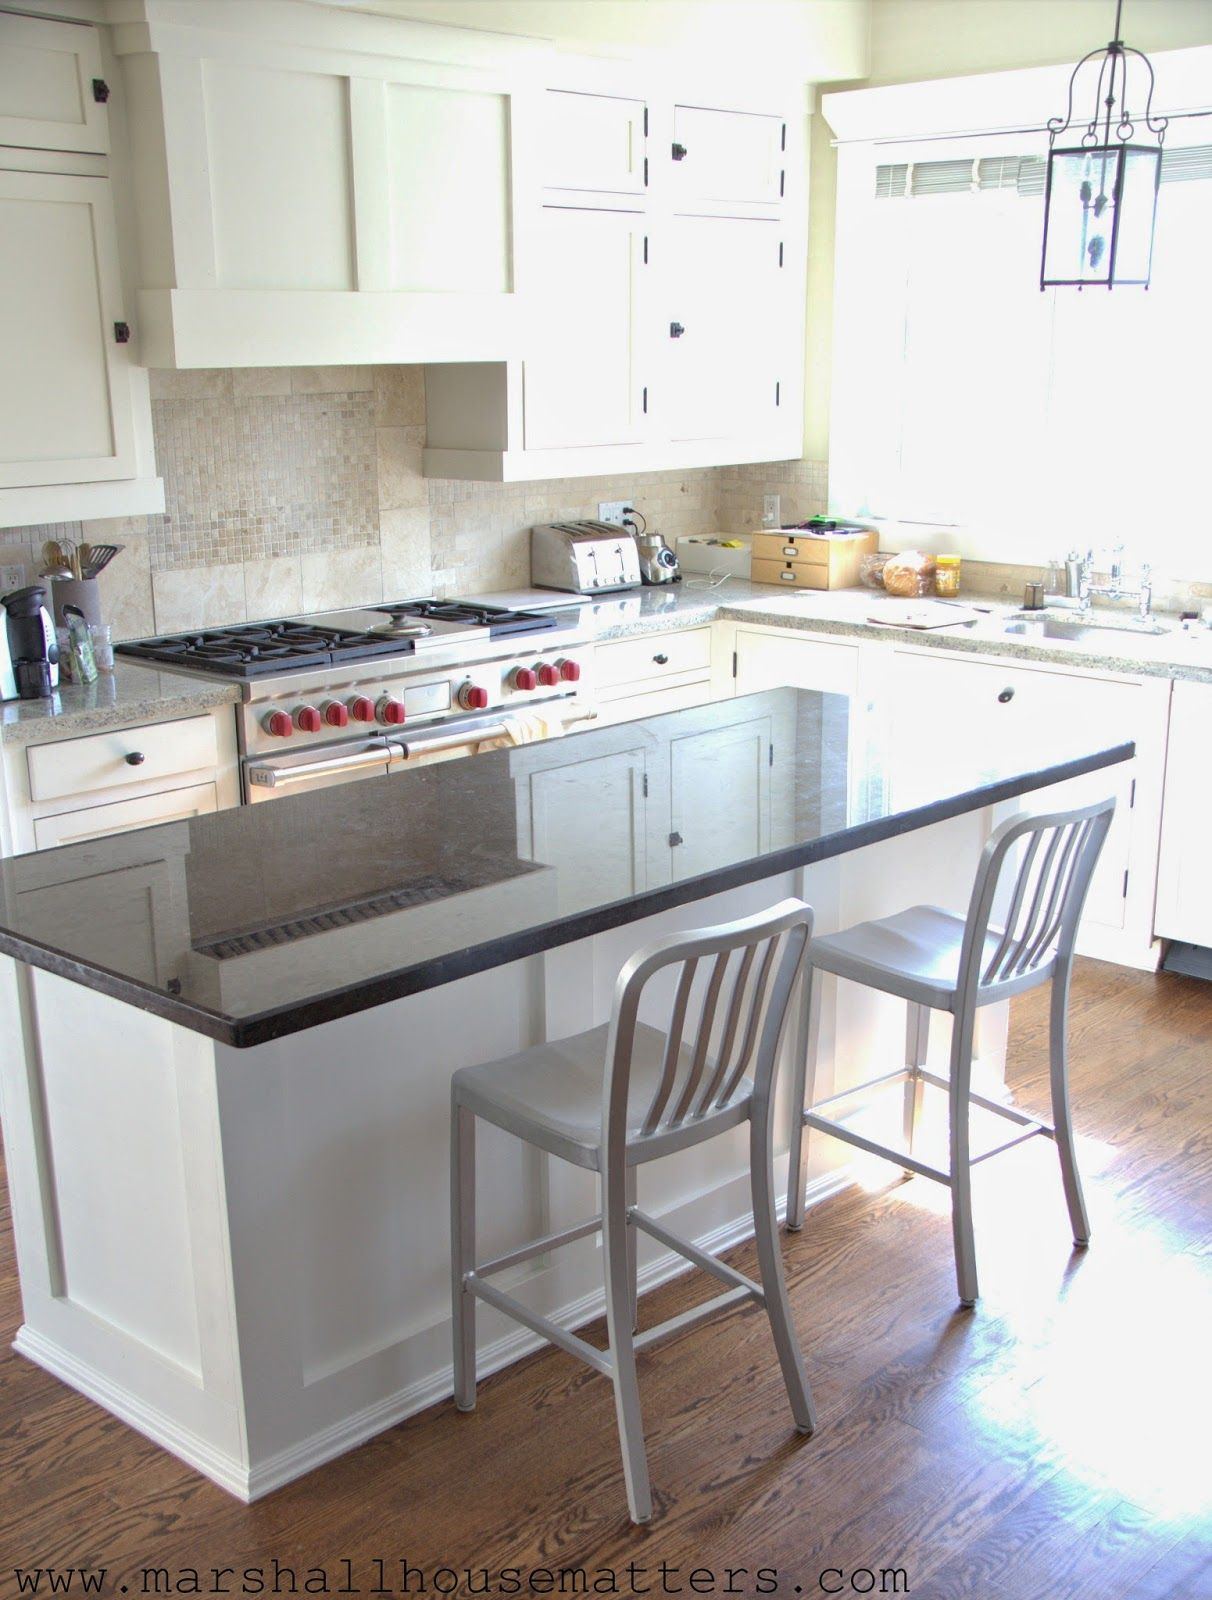 Marshall house matters reveal kitchen island painted pretty trim